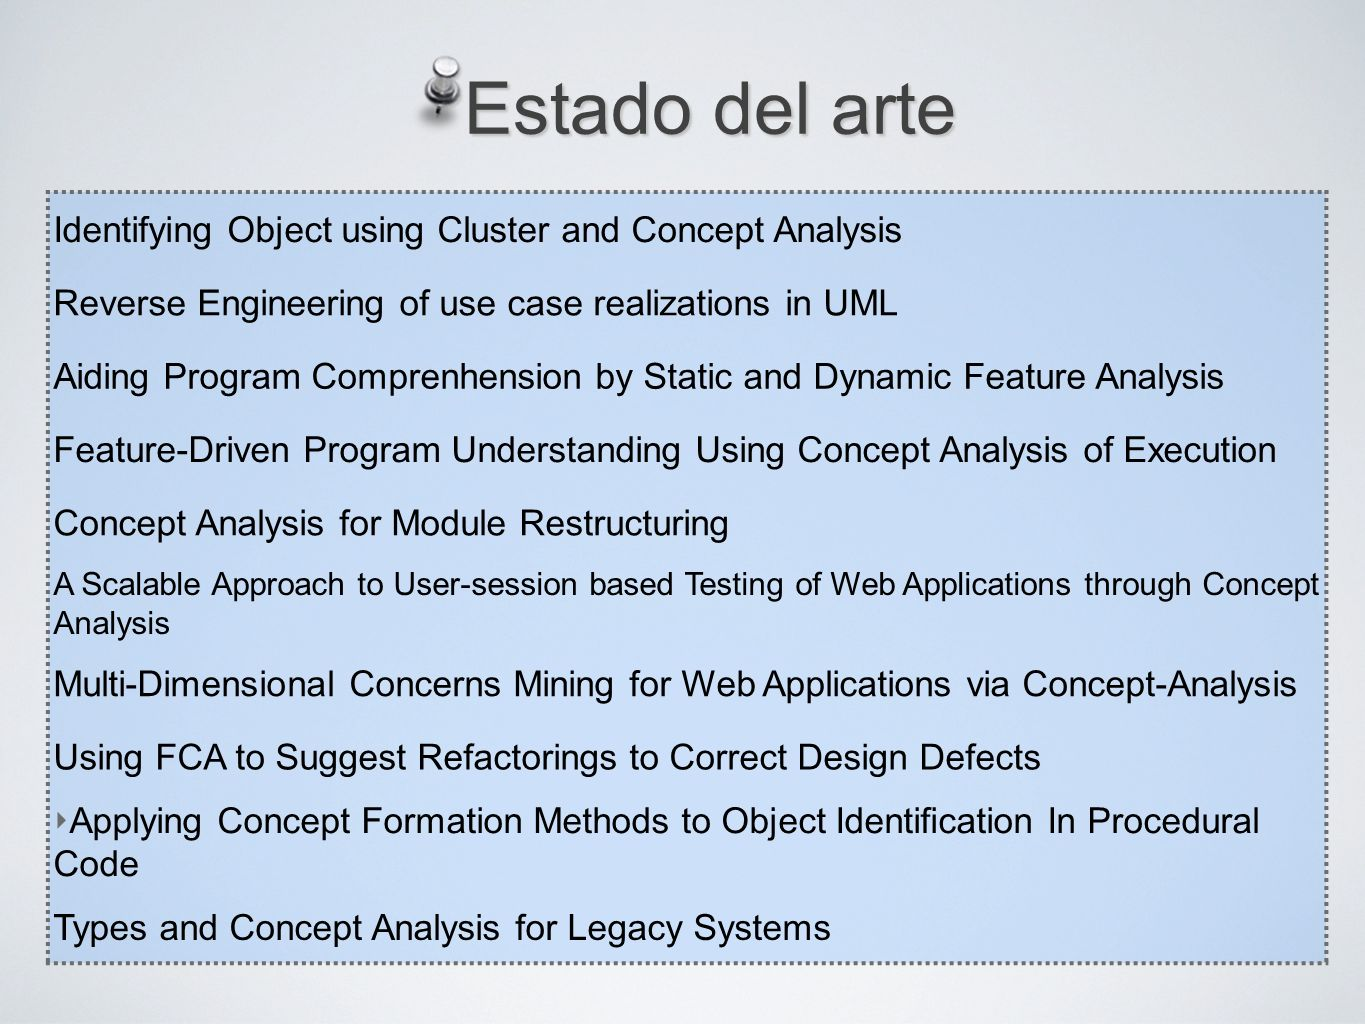 Estado del arte Identifying Object using Cluster and Concept Analysis Reverse Engineering of use case realizations in UML Aiding Program Comprenhension by Static and Dynamic Feature Analysis Feature-Driven Program Understanding Using Concept Analysis of Execution Concept Analysis for Module Restructuring A Scalable Approach to User-session based Testing of Web Applications through Concept Analysis Multi-Dimensional Concerns Mining for Web Applications via Concept-Analysis Using FCA to Suggest Refactorings to Correct Design Defects Applying Concept Formation Methods to Object Identication In Procedural Code Types and Concept Analysis for Legacy Systems